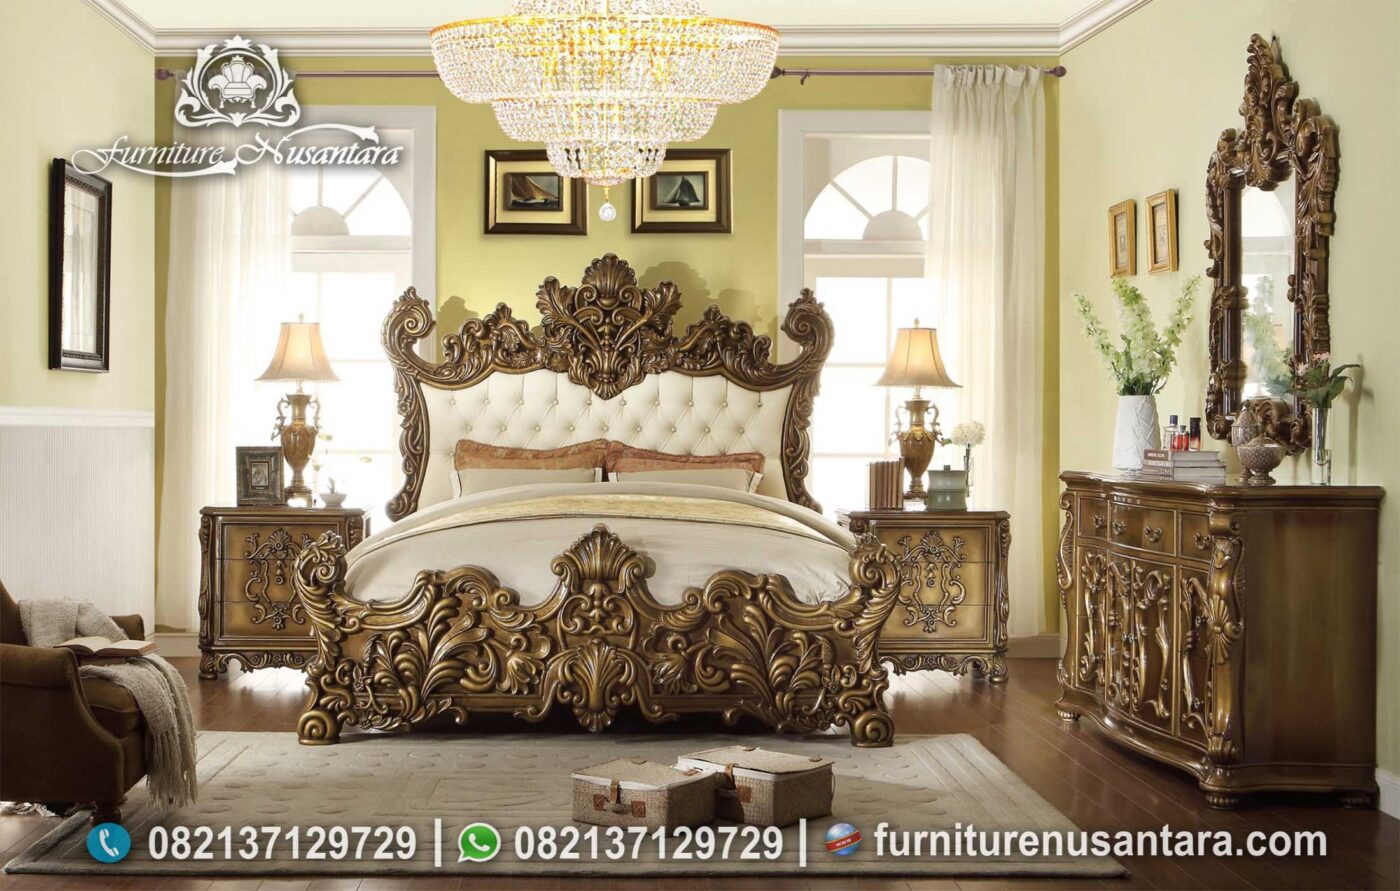 Best Italian Luxury Bedroom Casual Ukir KS-172, Furniture Nusantara